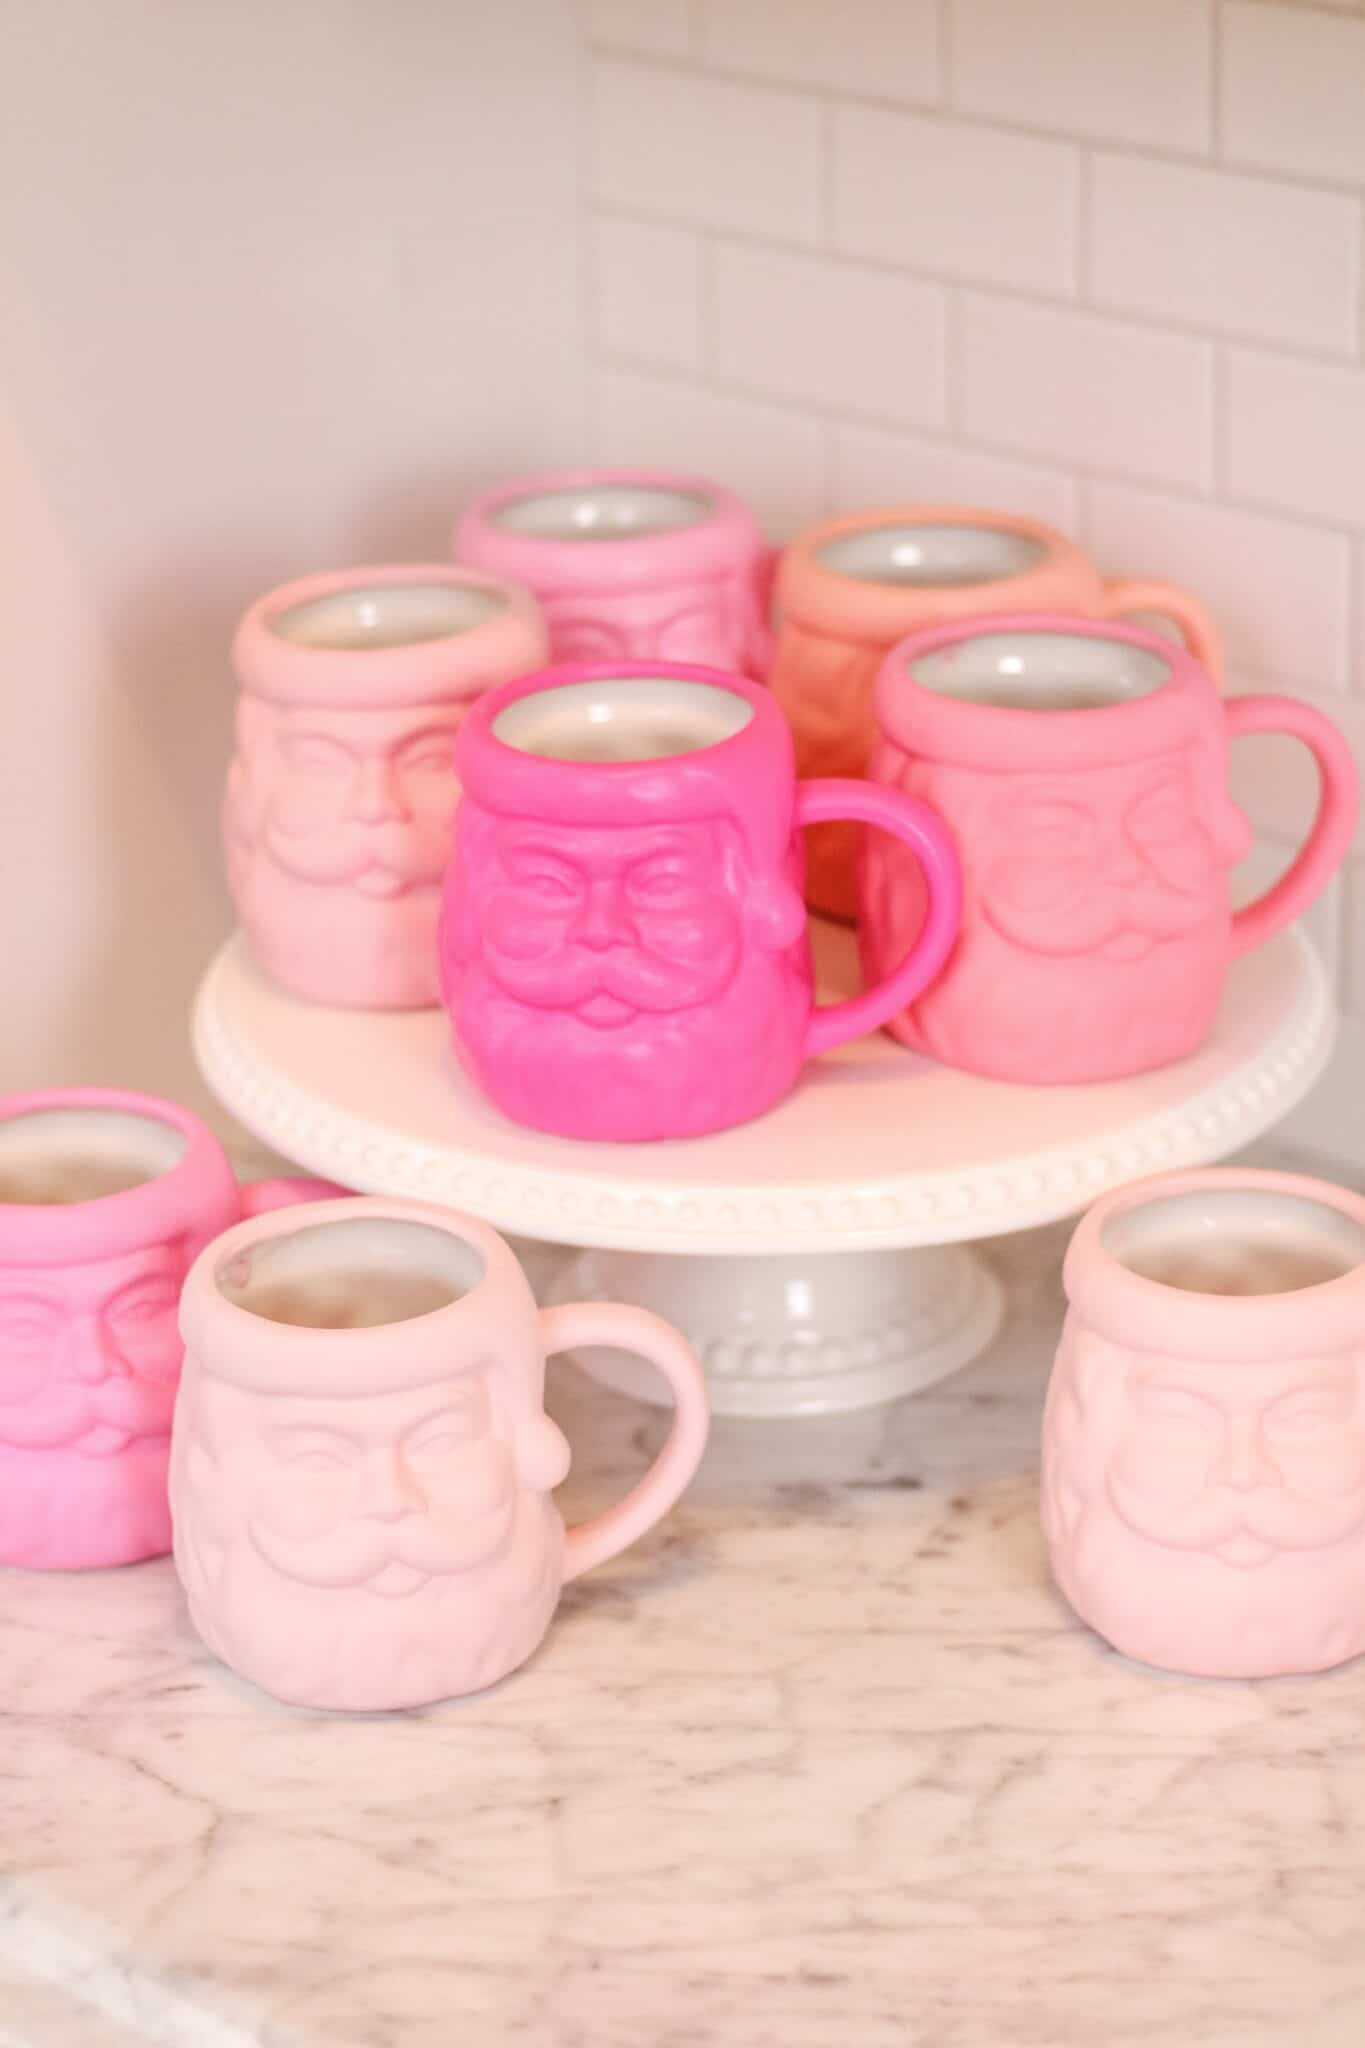 Pink Santa Mugs on a white cake stand